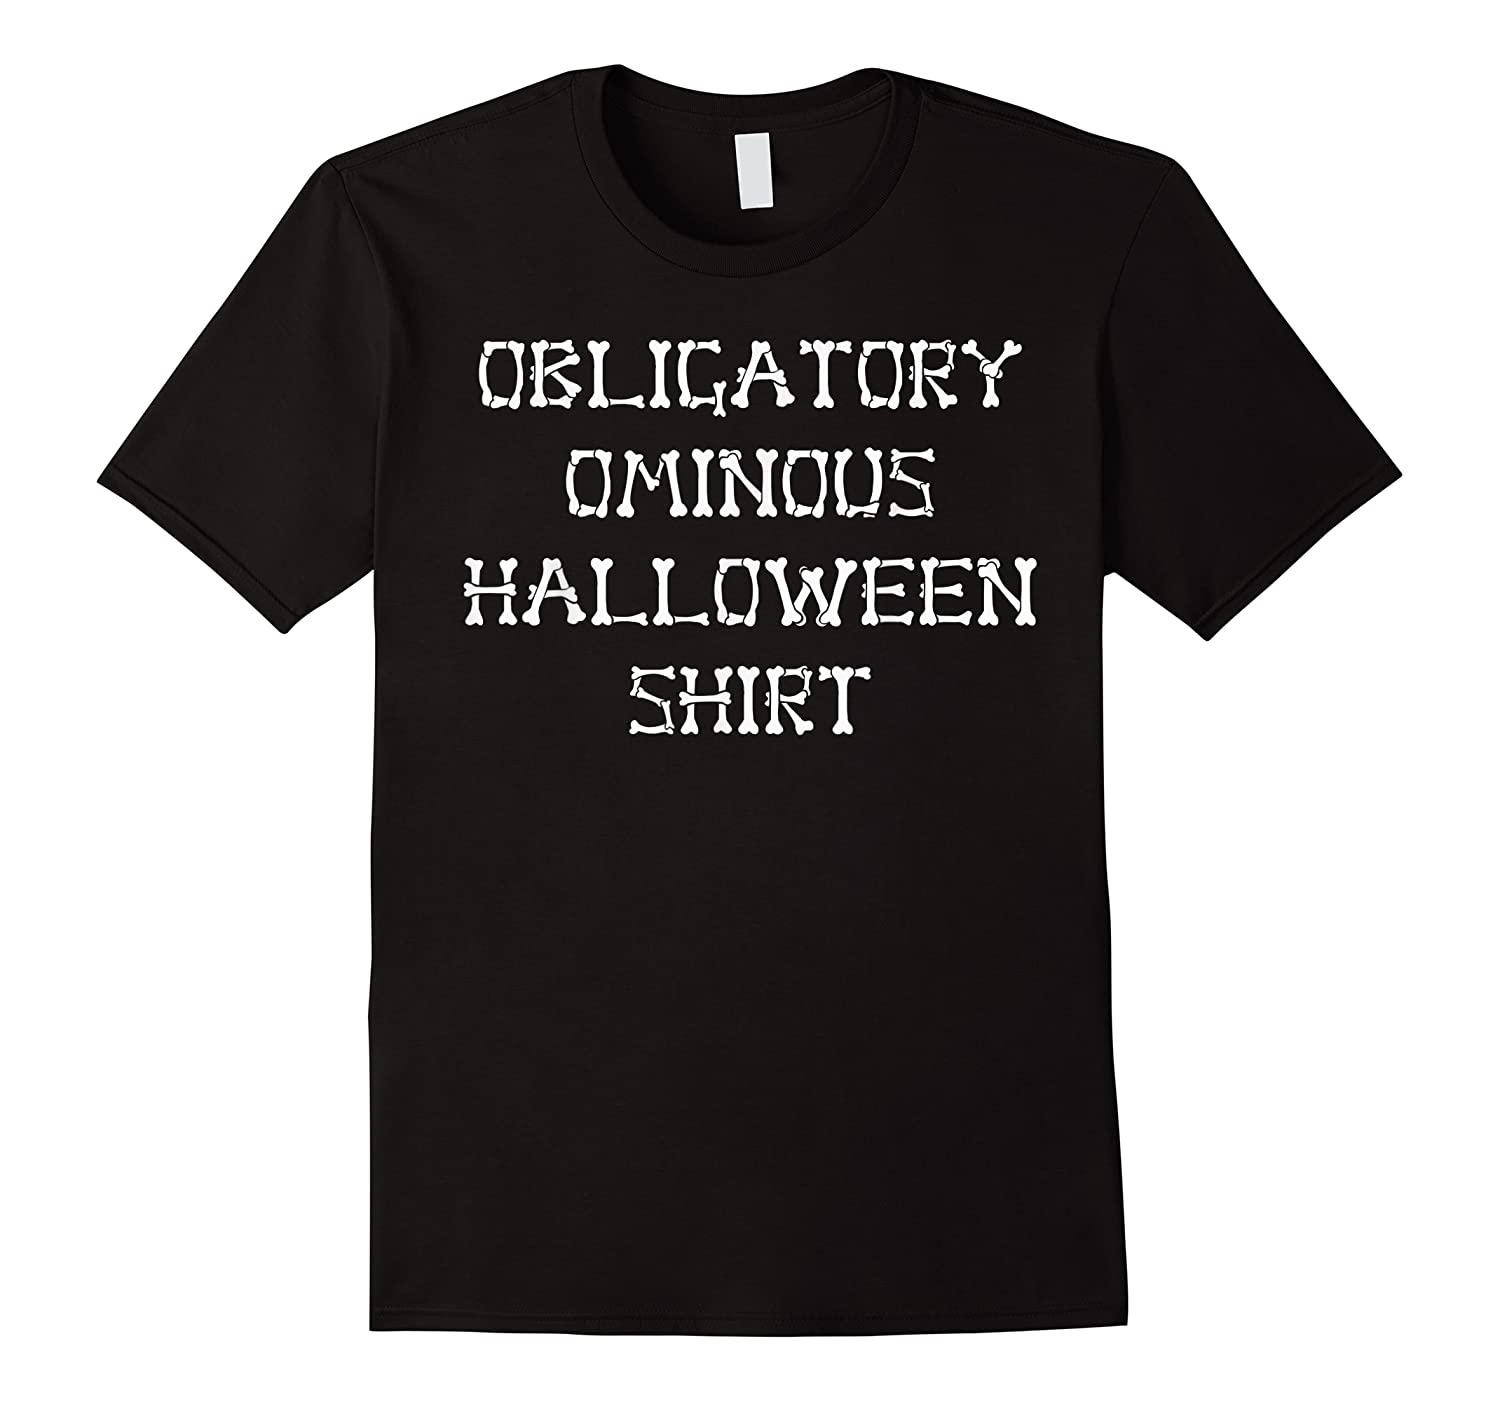 Obligatory Ominous Halloween All Hallows Eve Fun Party Gear T-shirt